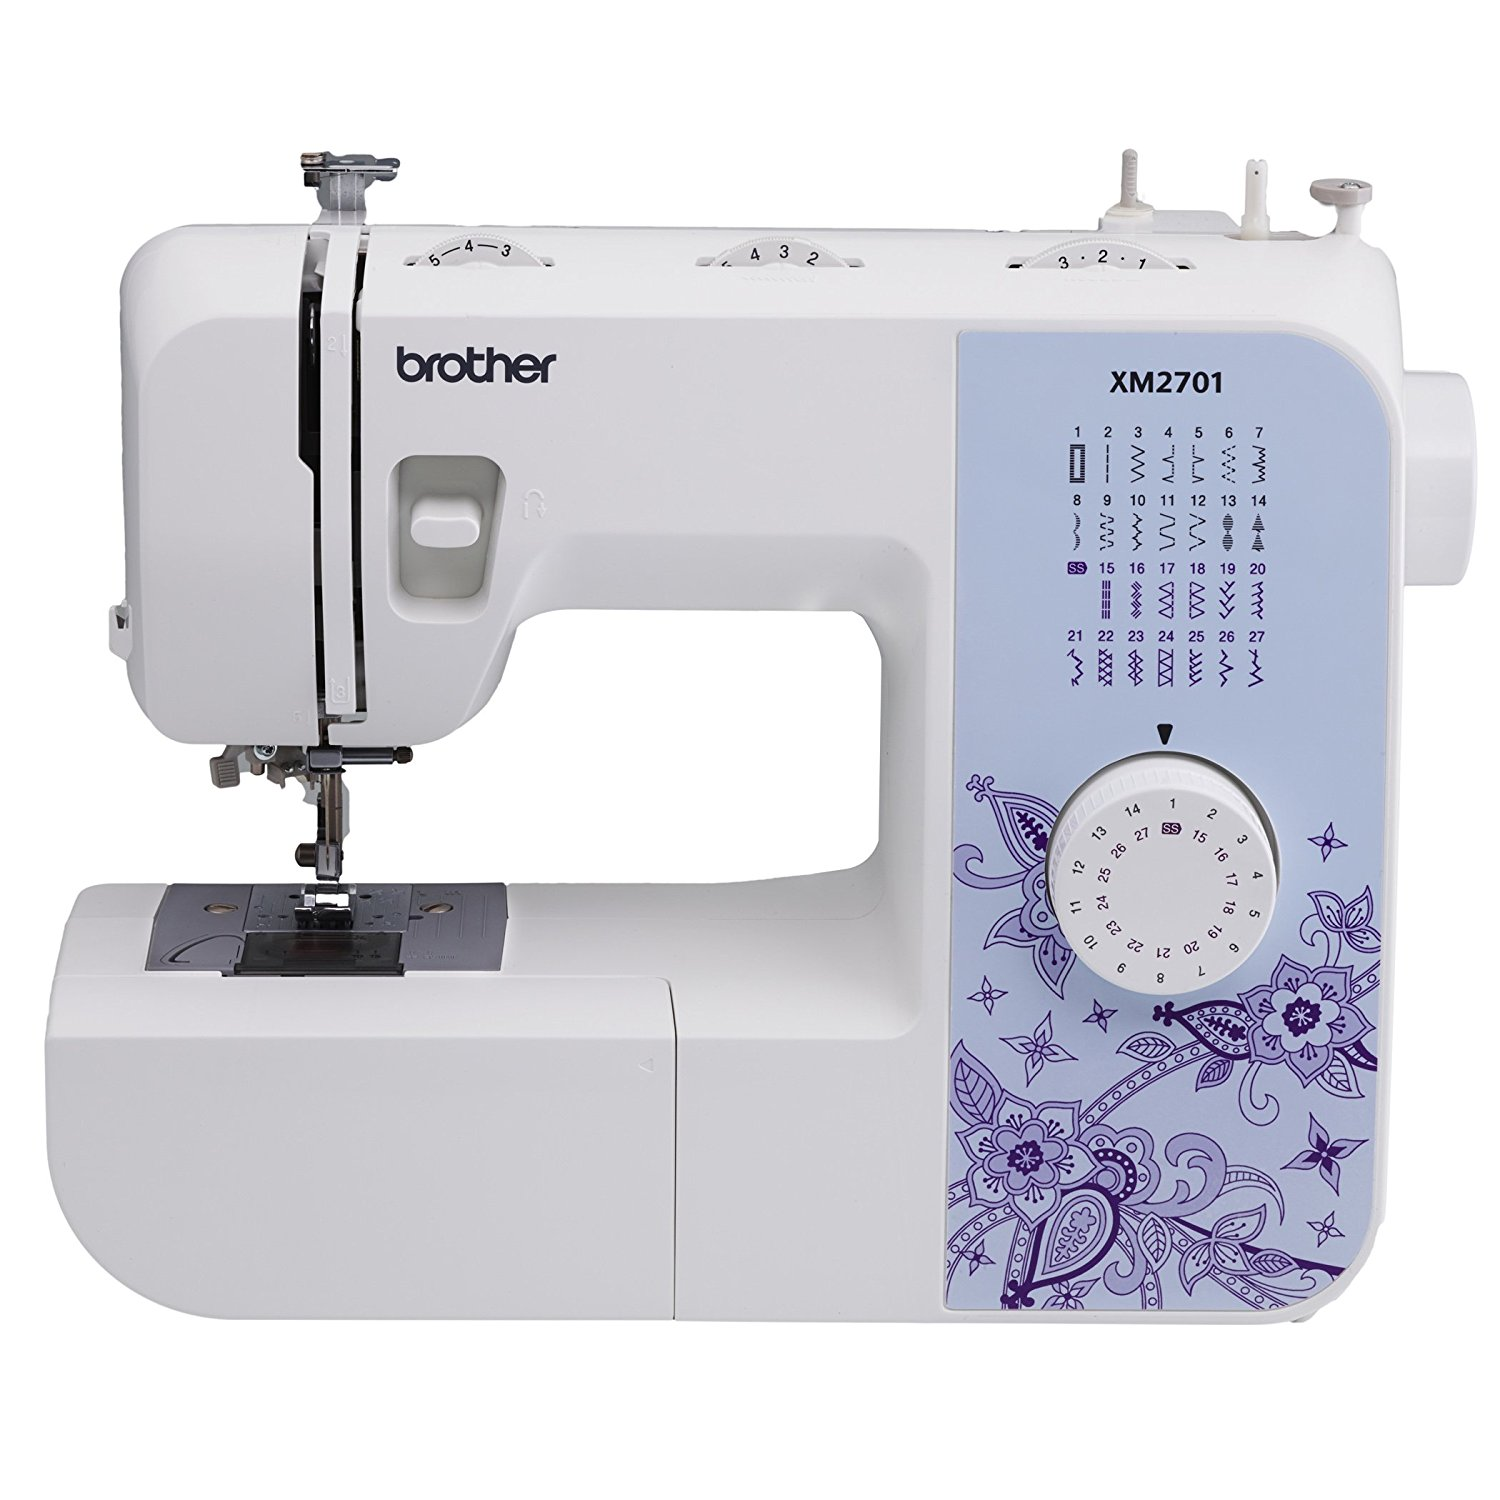 Best Brother Sewing & Embroidery Machine Review: Short on cash but still want a Brother product? Try this!